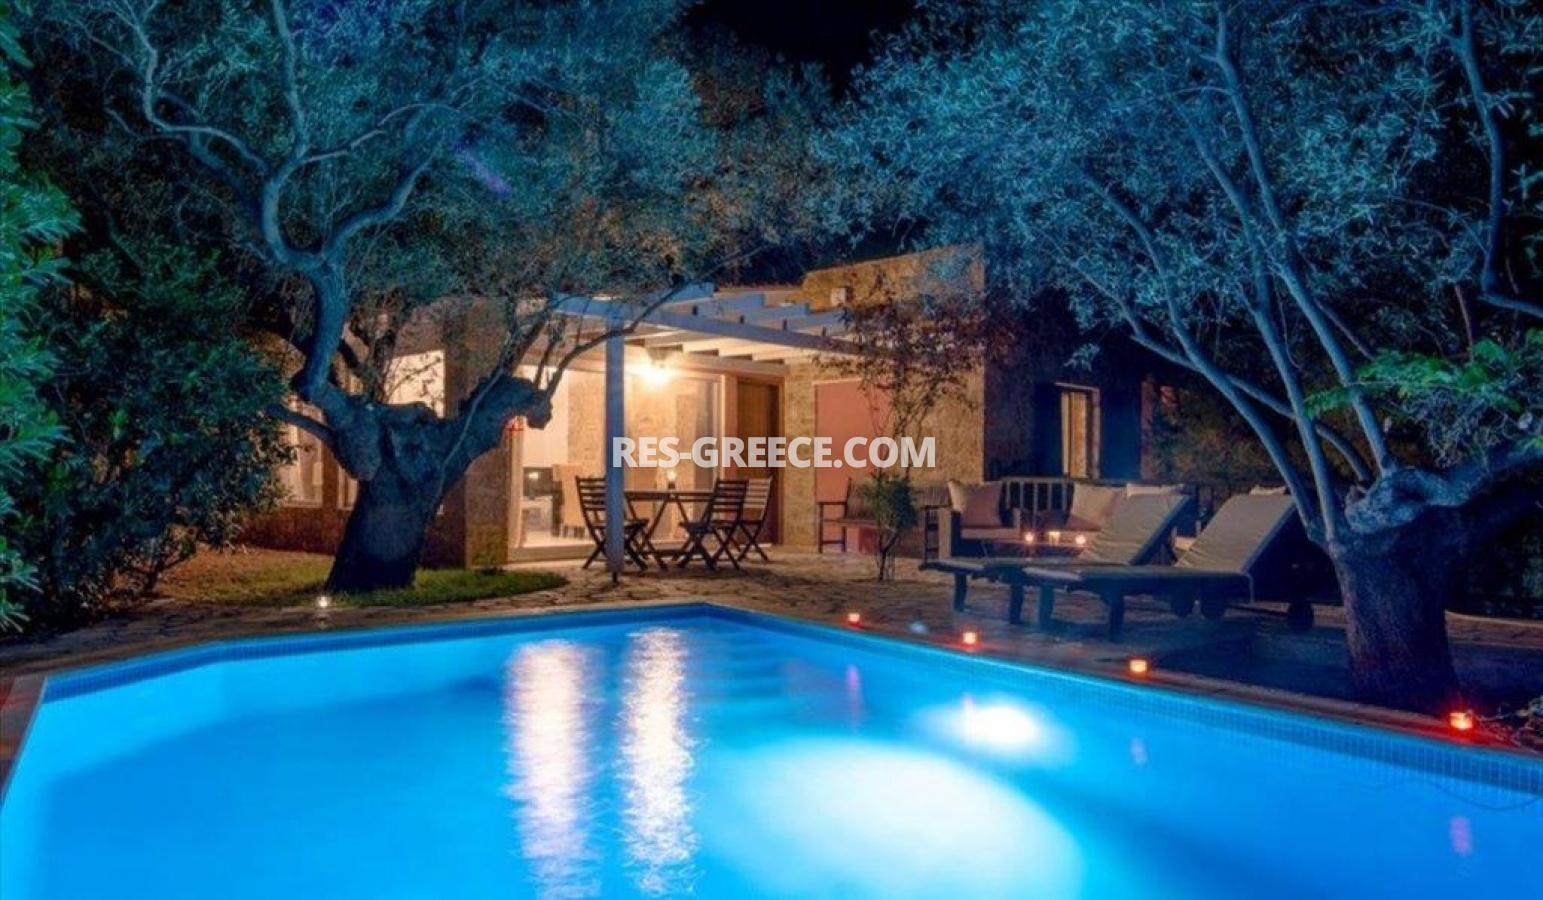 Ilectra, Halkidiki-Sithonia, Greece - cozy cottage with a pool by the sea - Photo 9